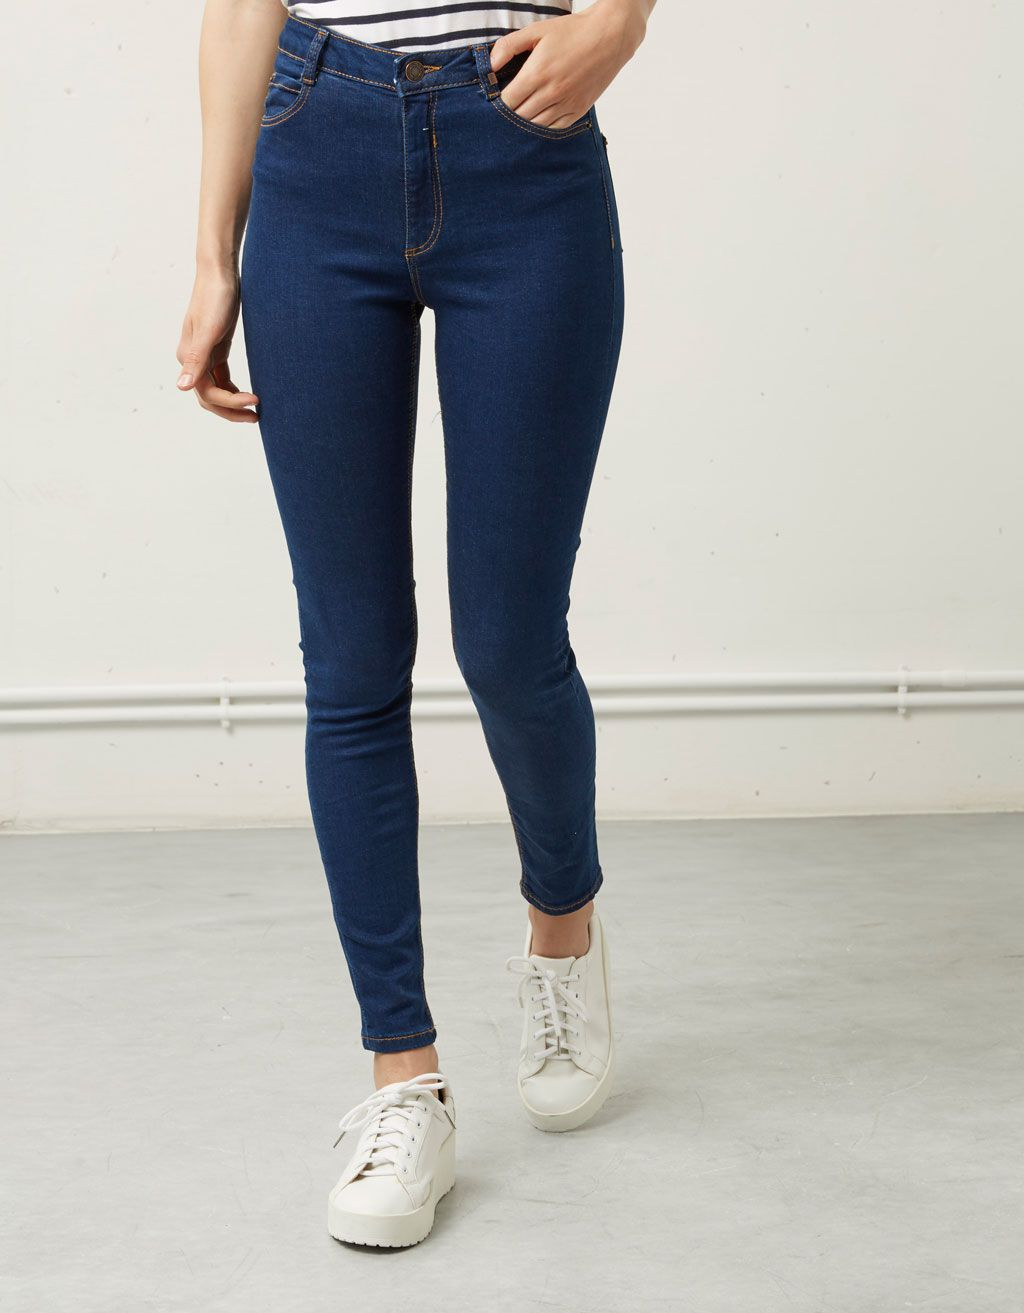 40e7d4c5e4 Super Skinny High waist jeans Bershka - High Waist - Bershka Czech Republic